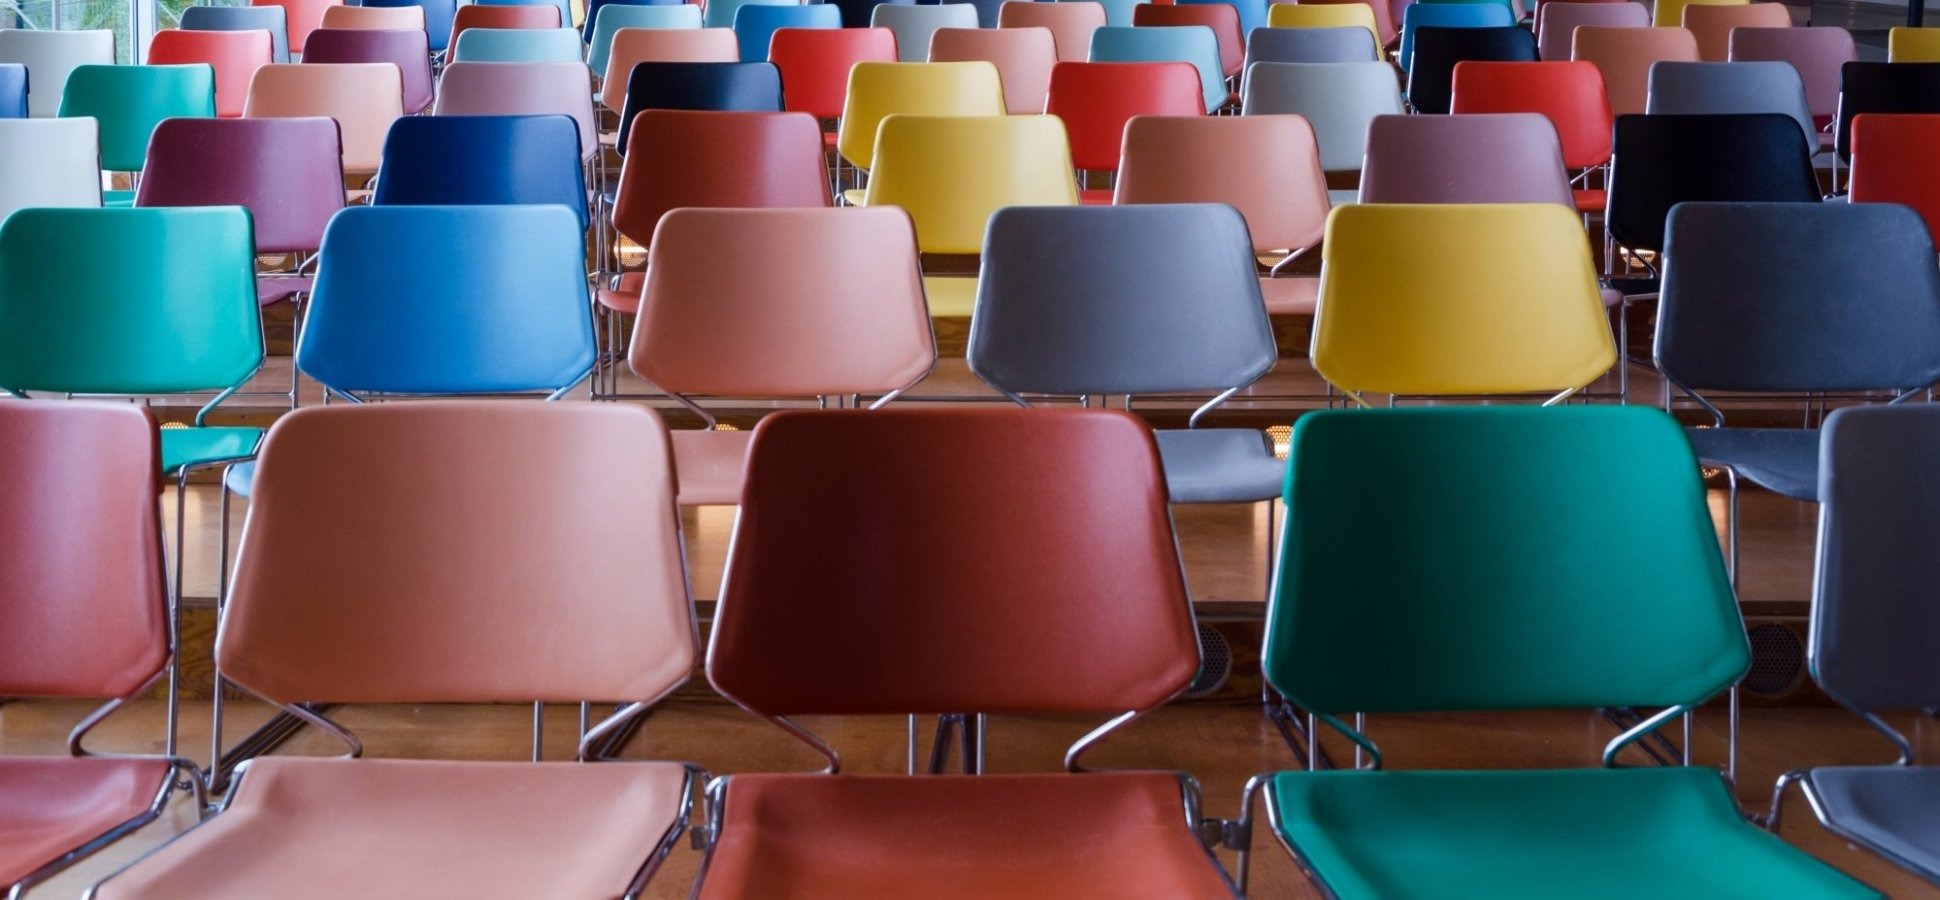 Why Every Amazon Meeting Has at Least 1 Empty Chair